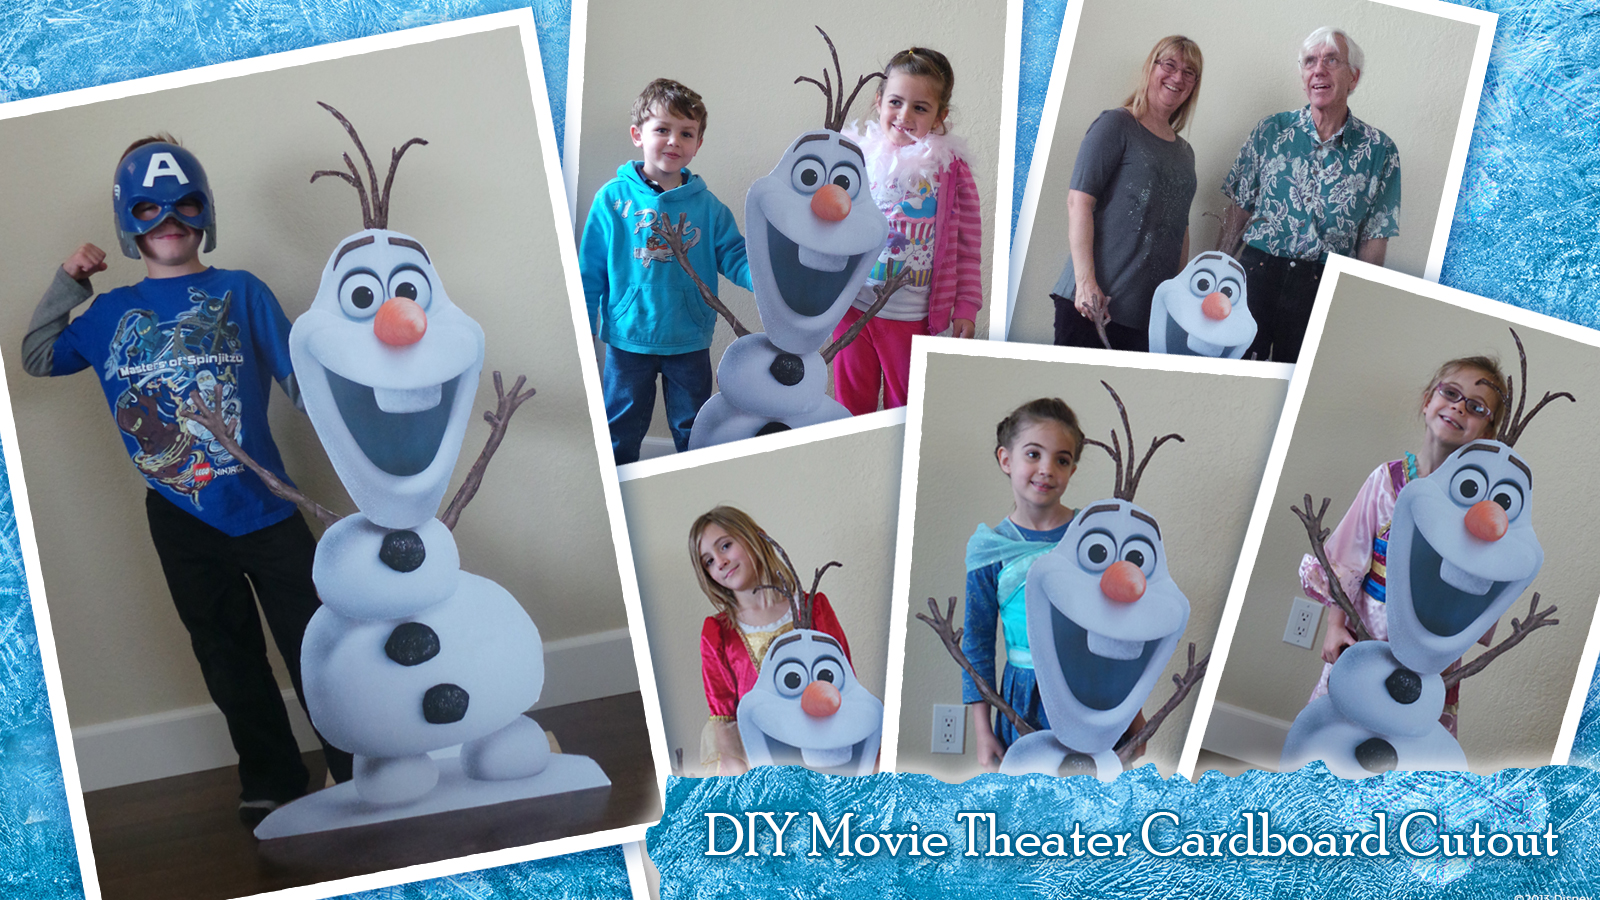 Easy Birthday Party Cardboard Cut Out - Olaf and More!